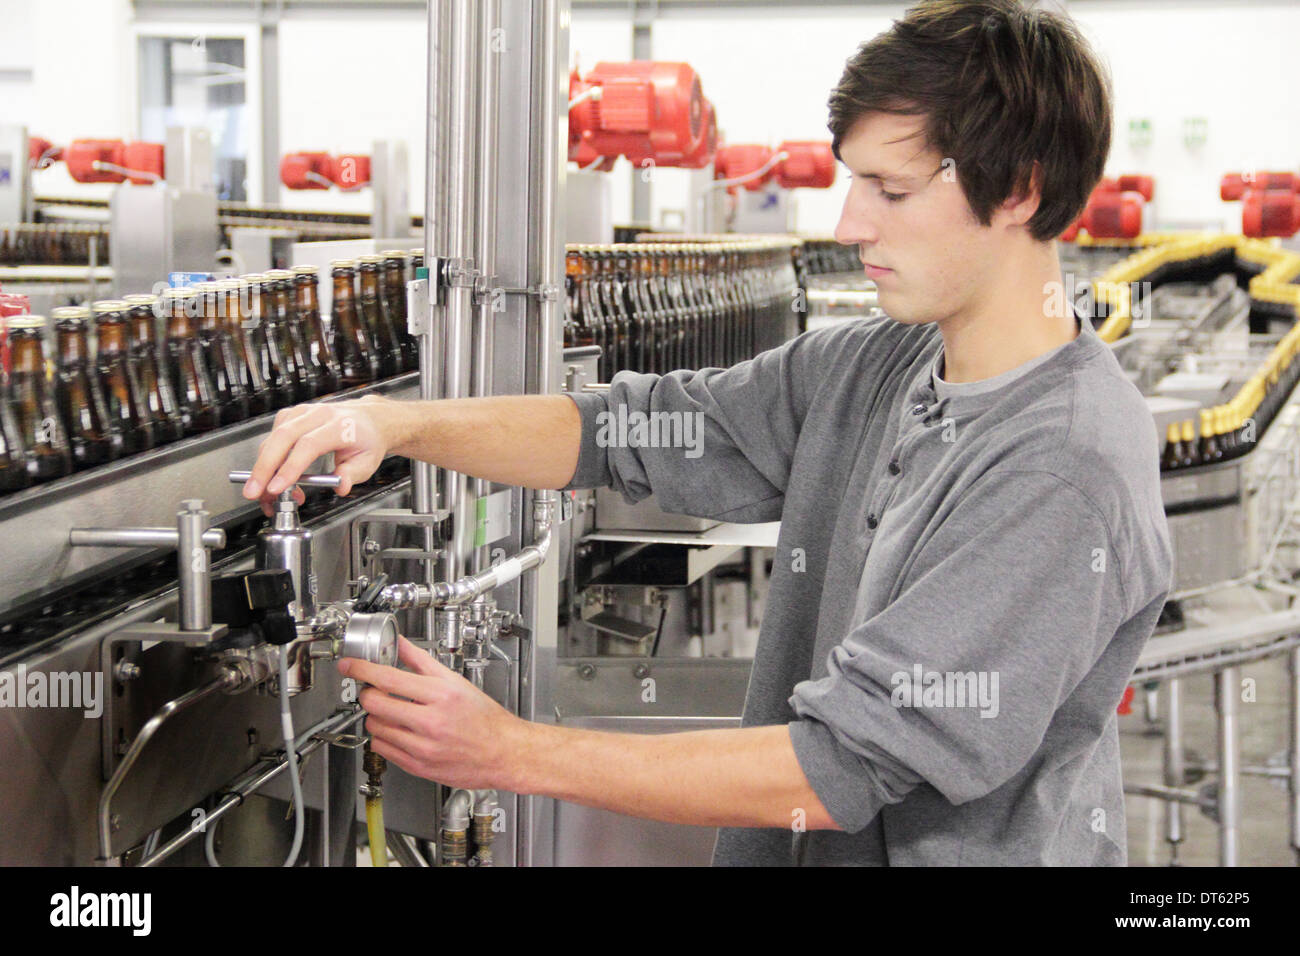 Man checking industrial equipment in brewery - Stock Image